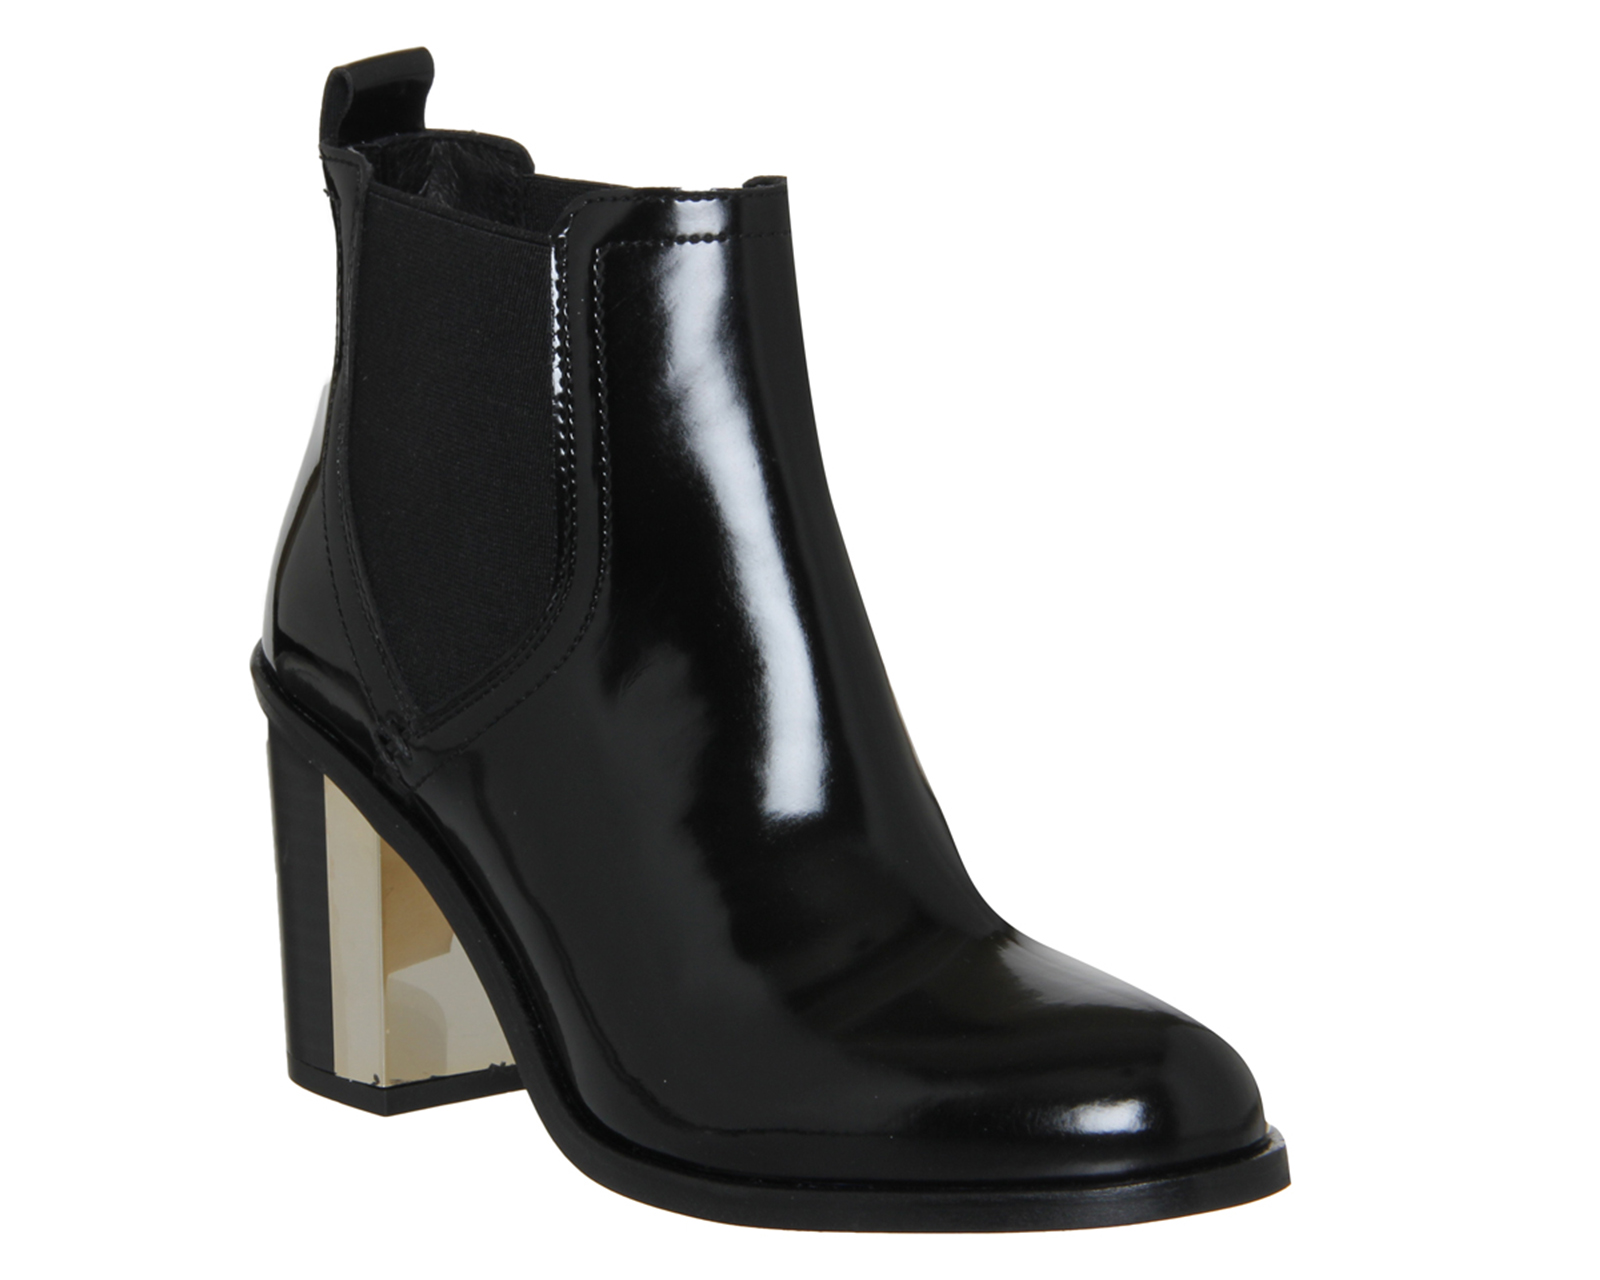 Perfect With Undeniable Mod Roots, The Dr Martens Bianca Low Shaft Chelsea Boot A Classic Bootie Design Crafted In Leather, You Can Choose Between Smooth And Patent Finishes In Upper Elasticized Sides And AirWair Branded Pull Tab Make